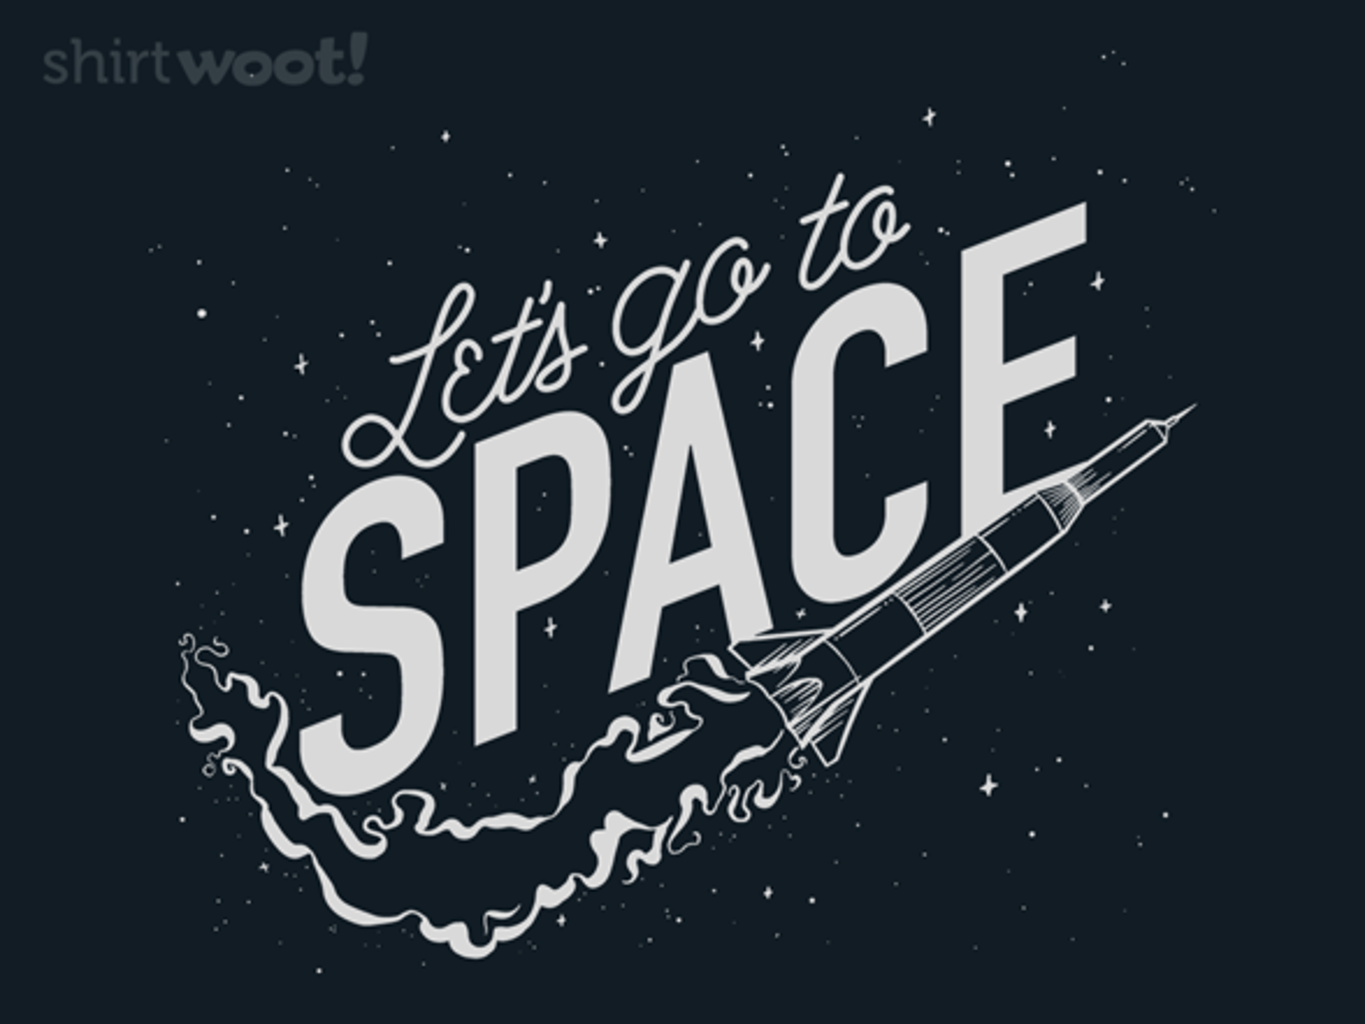 Woot!: Let's go to SPACE